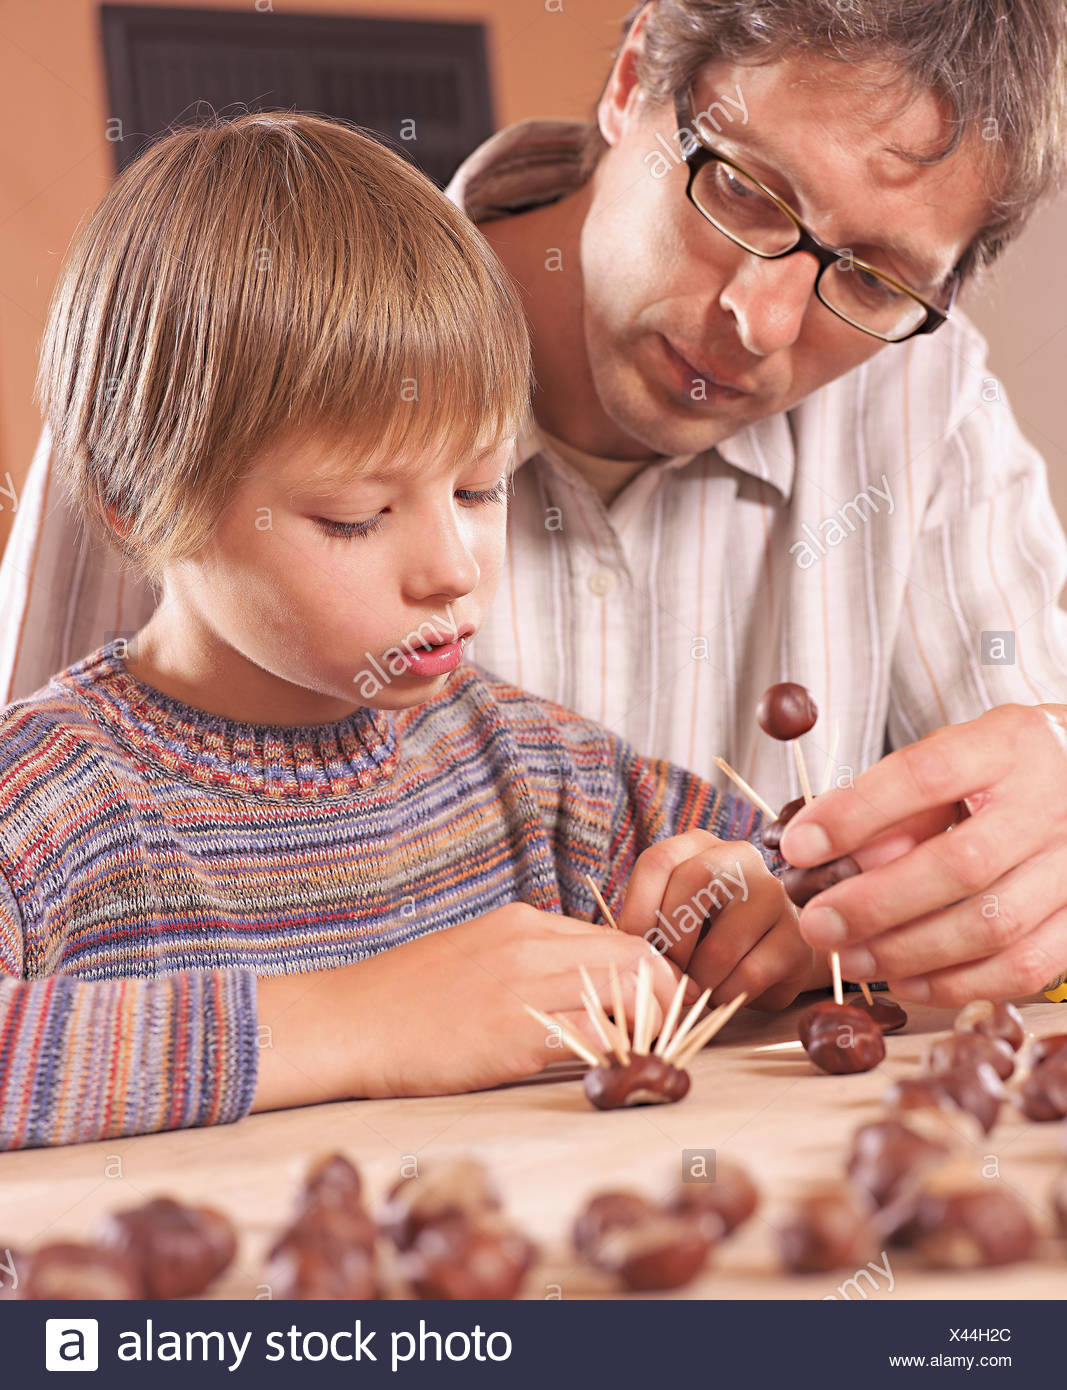 Father and son doing craft - Stock Image